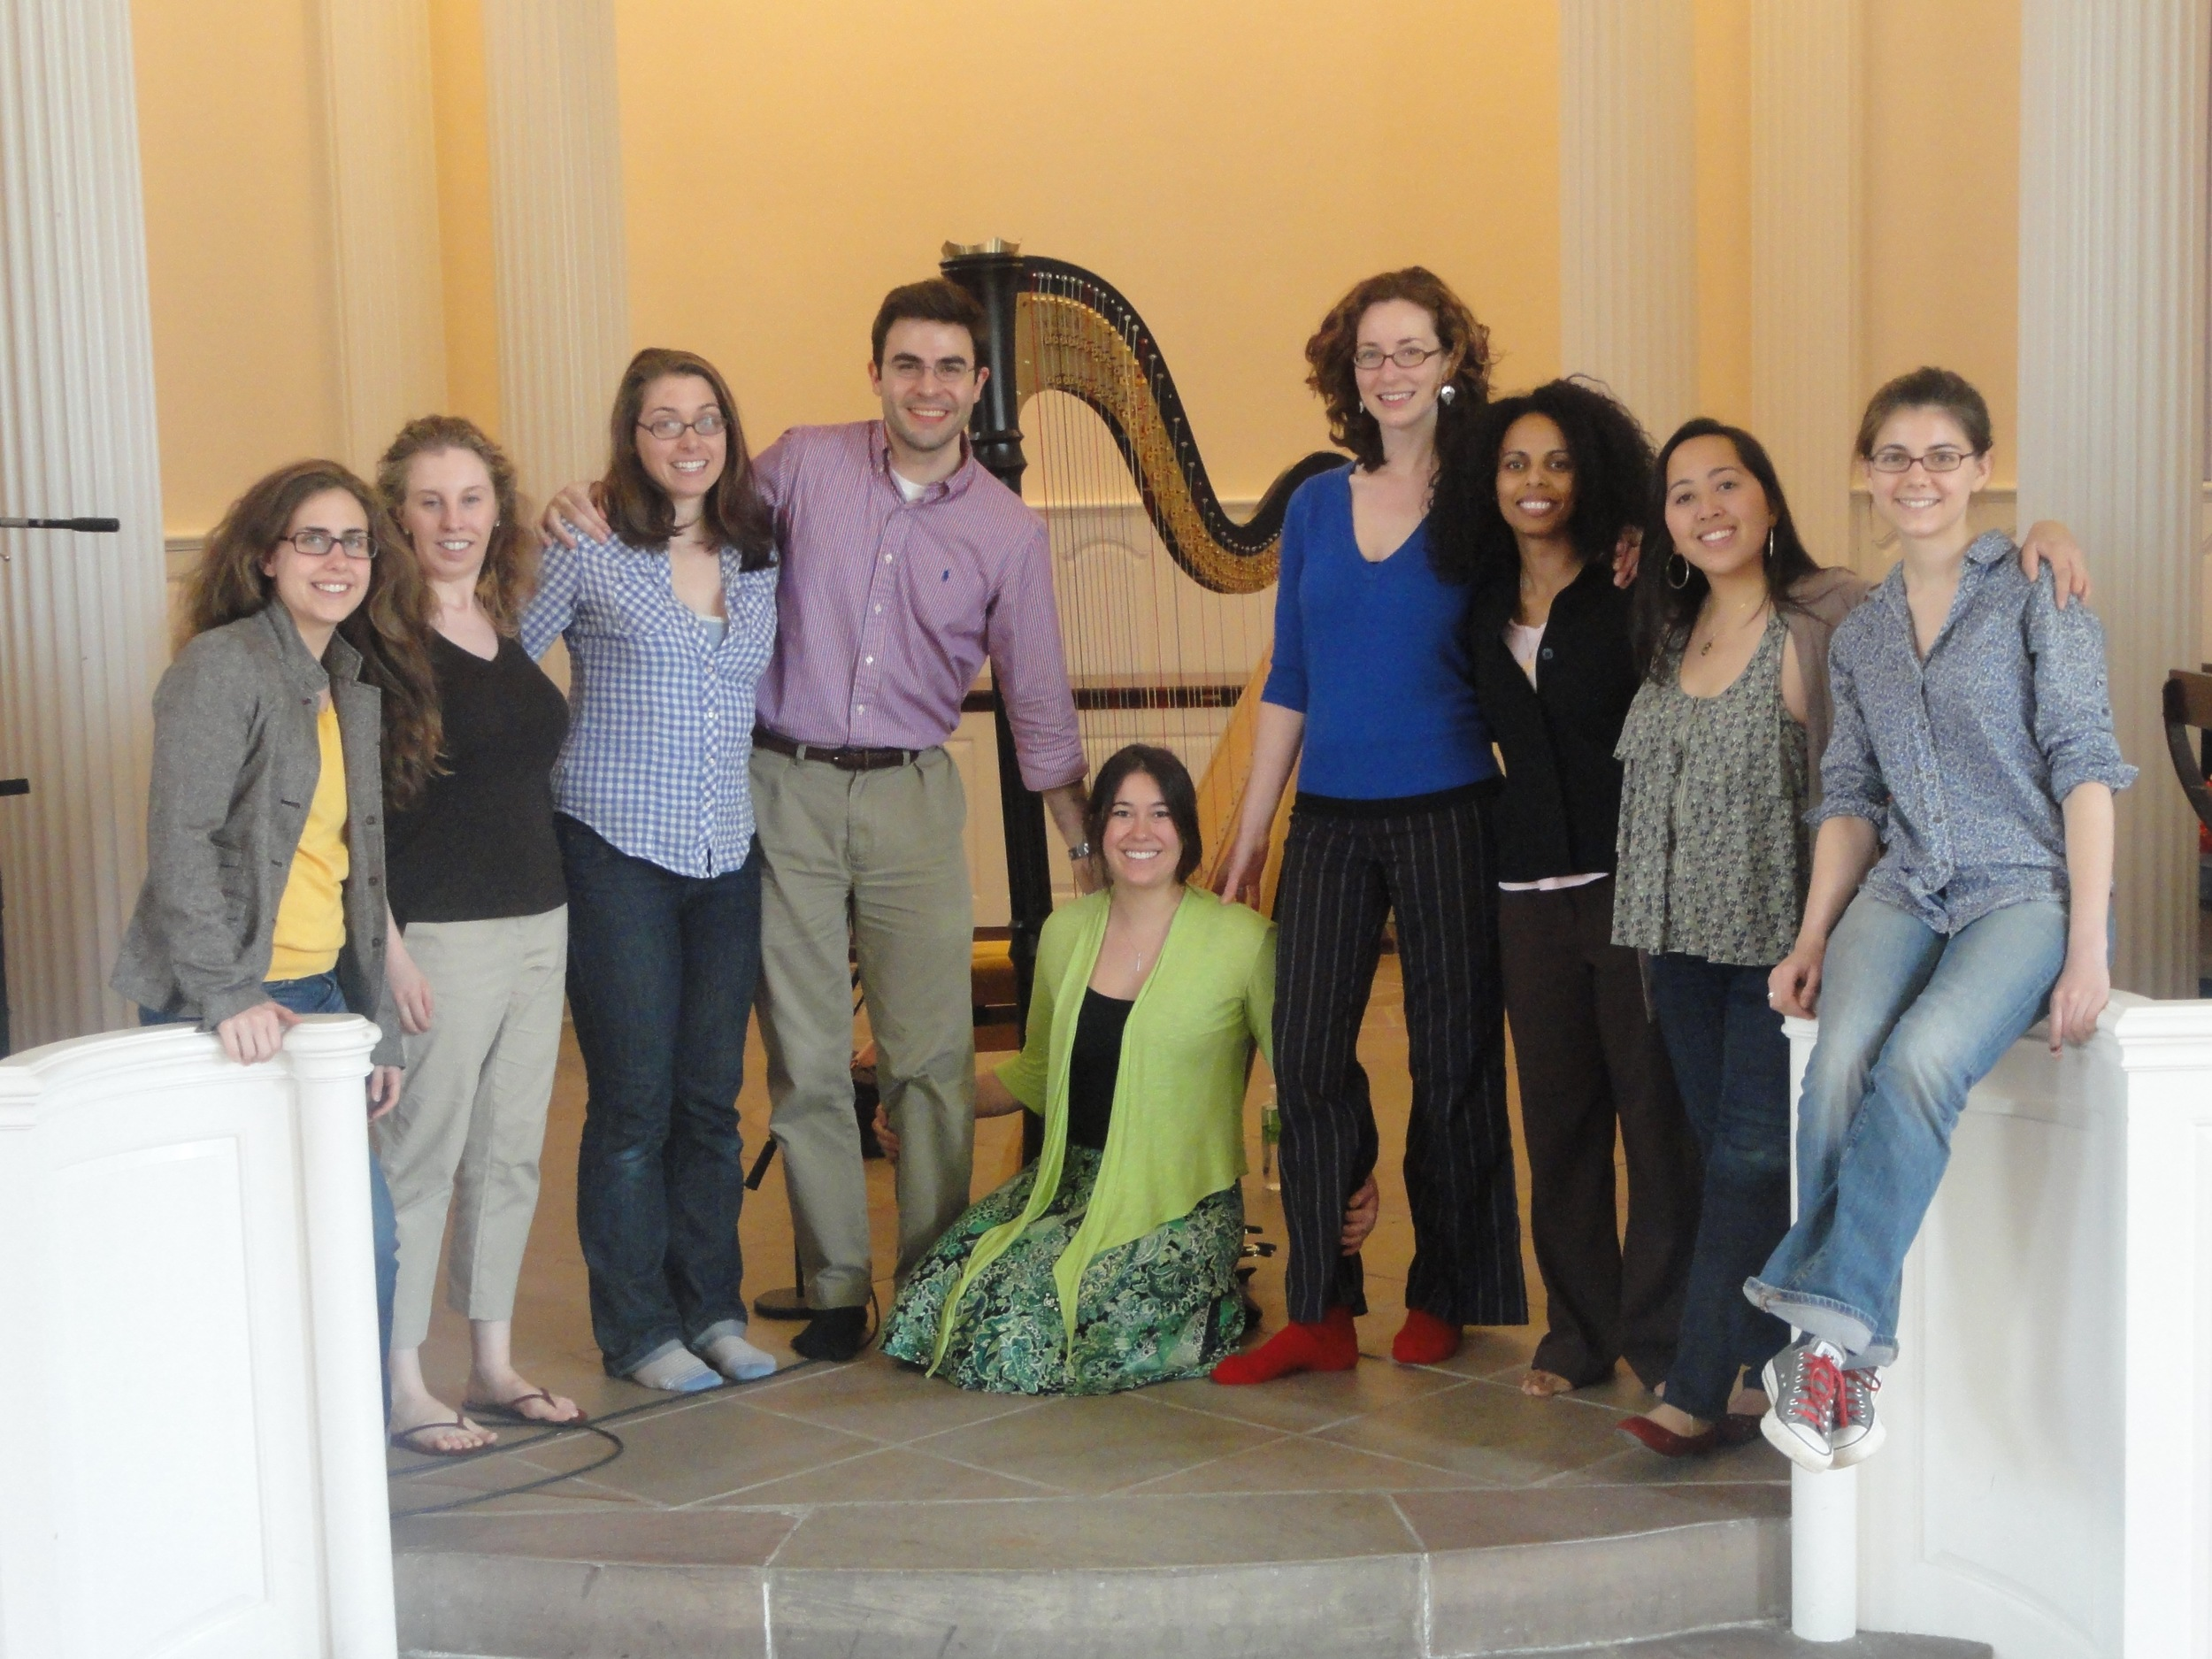 """Etherea after completing recording on """"Ceremony of Carols"""" in Marquand Chapel, Yale Divinity School"""